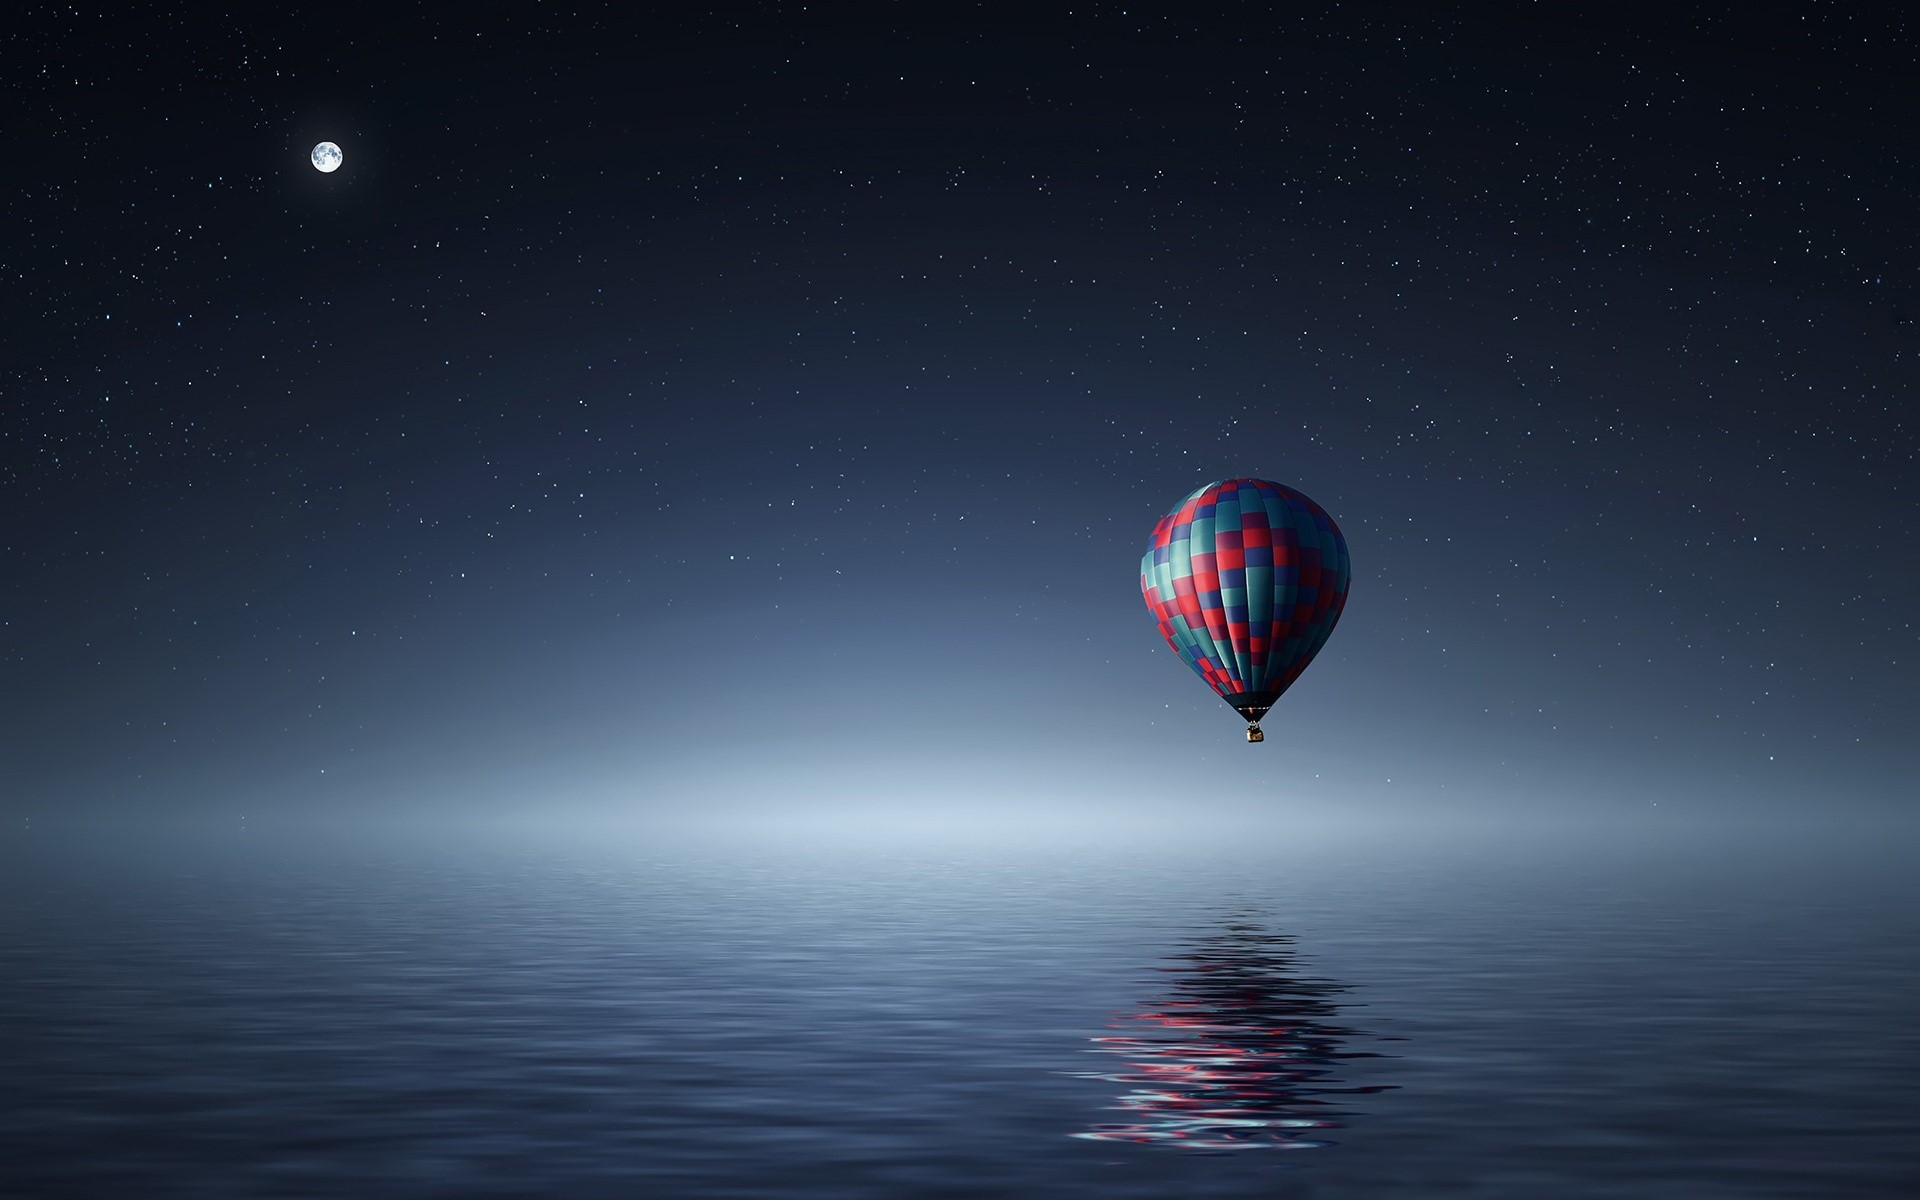 Wallpaper Hot air balloon in nothingness